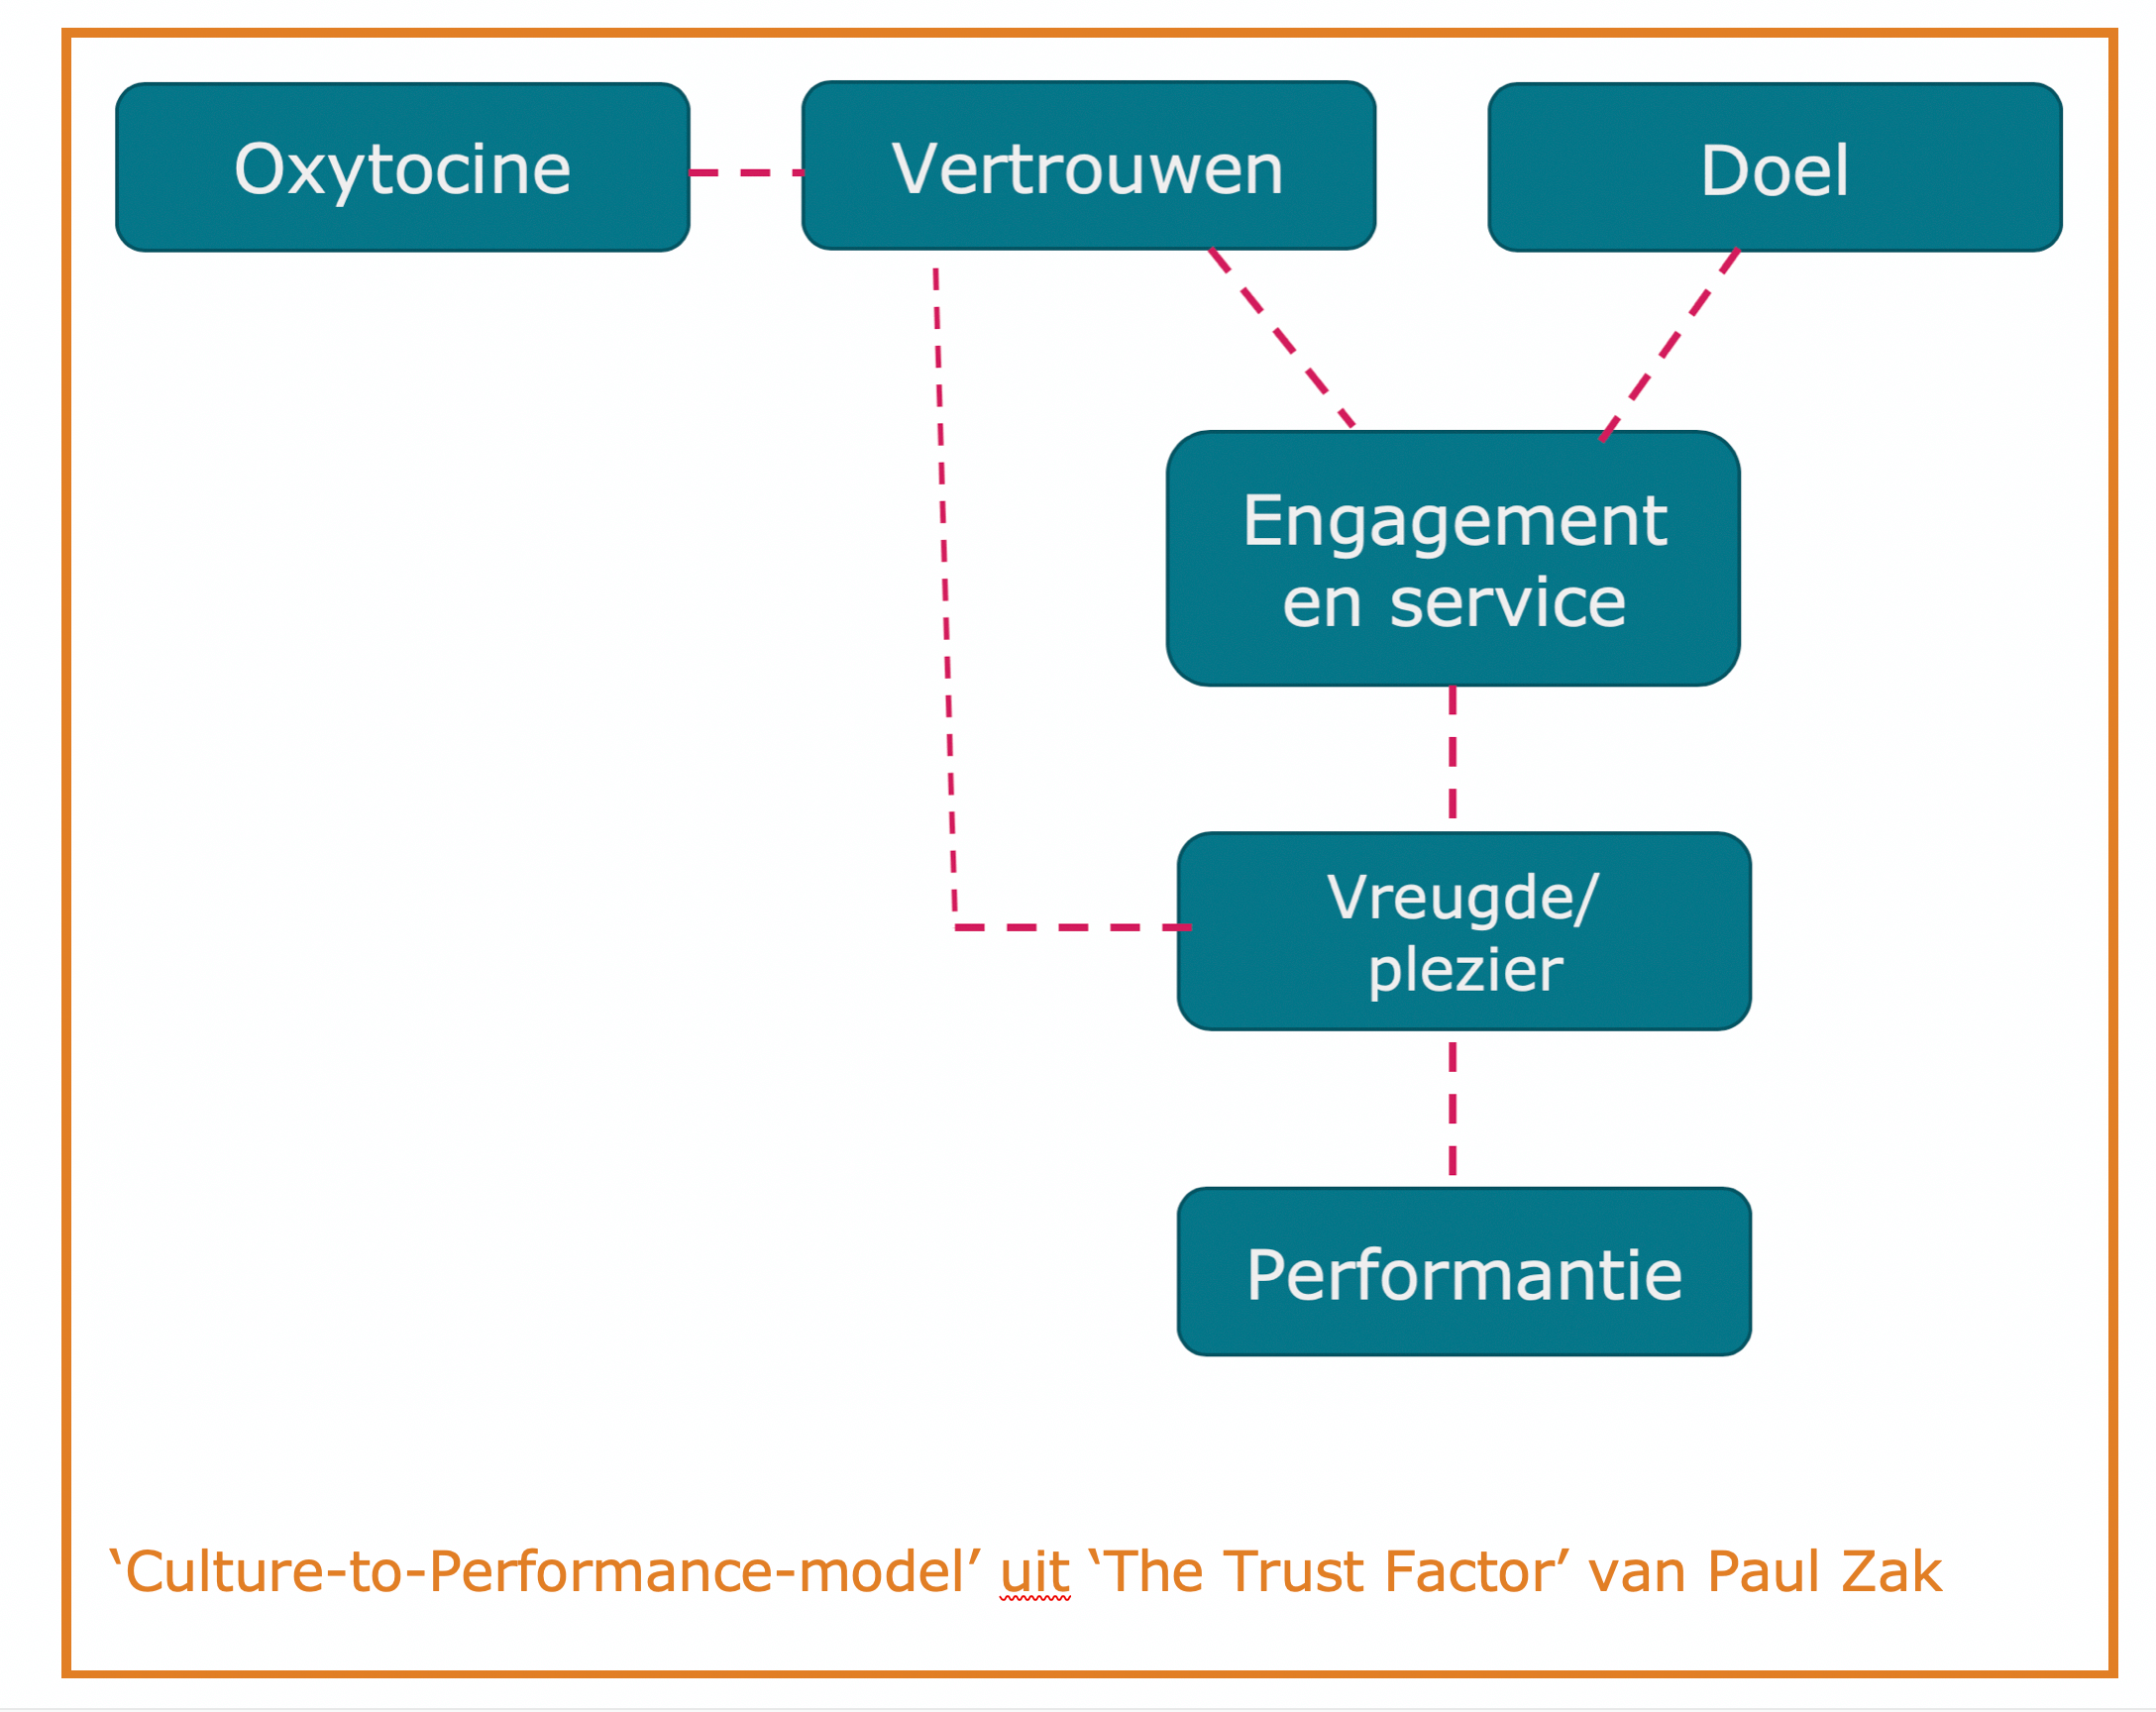 Culture to performance model van Paul Zak